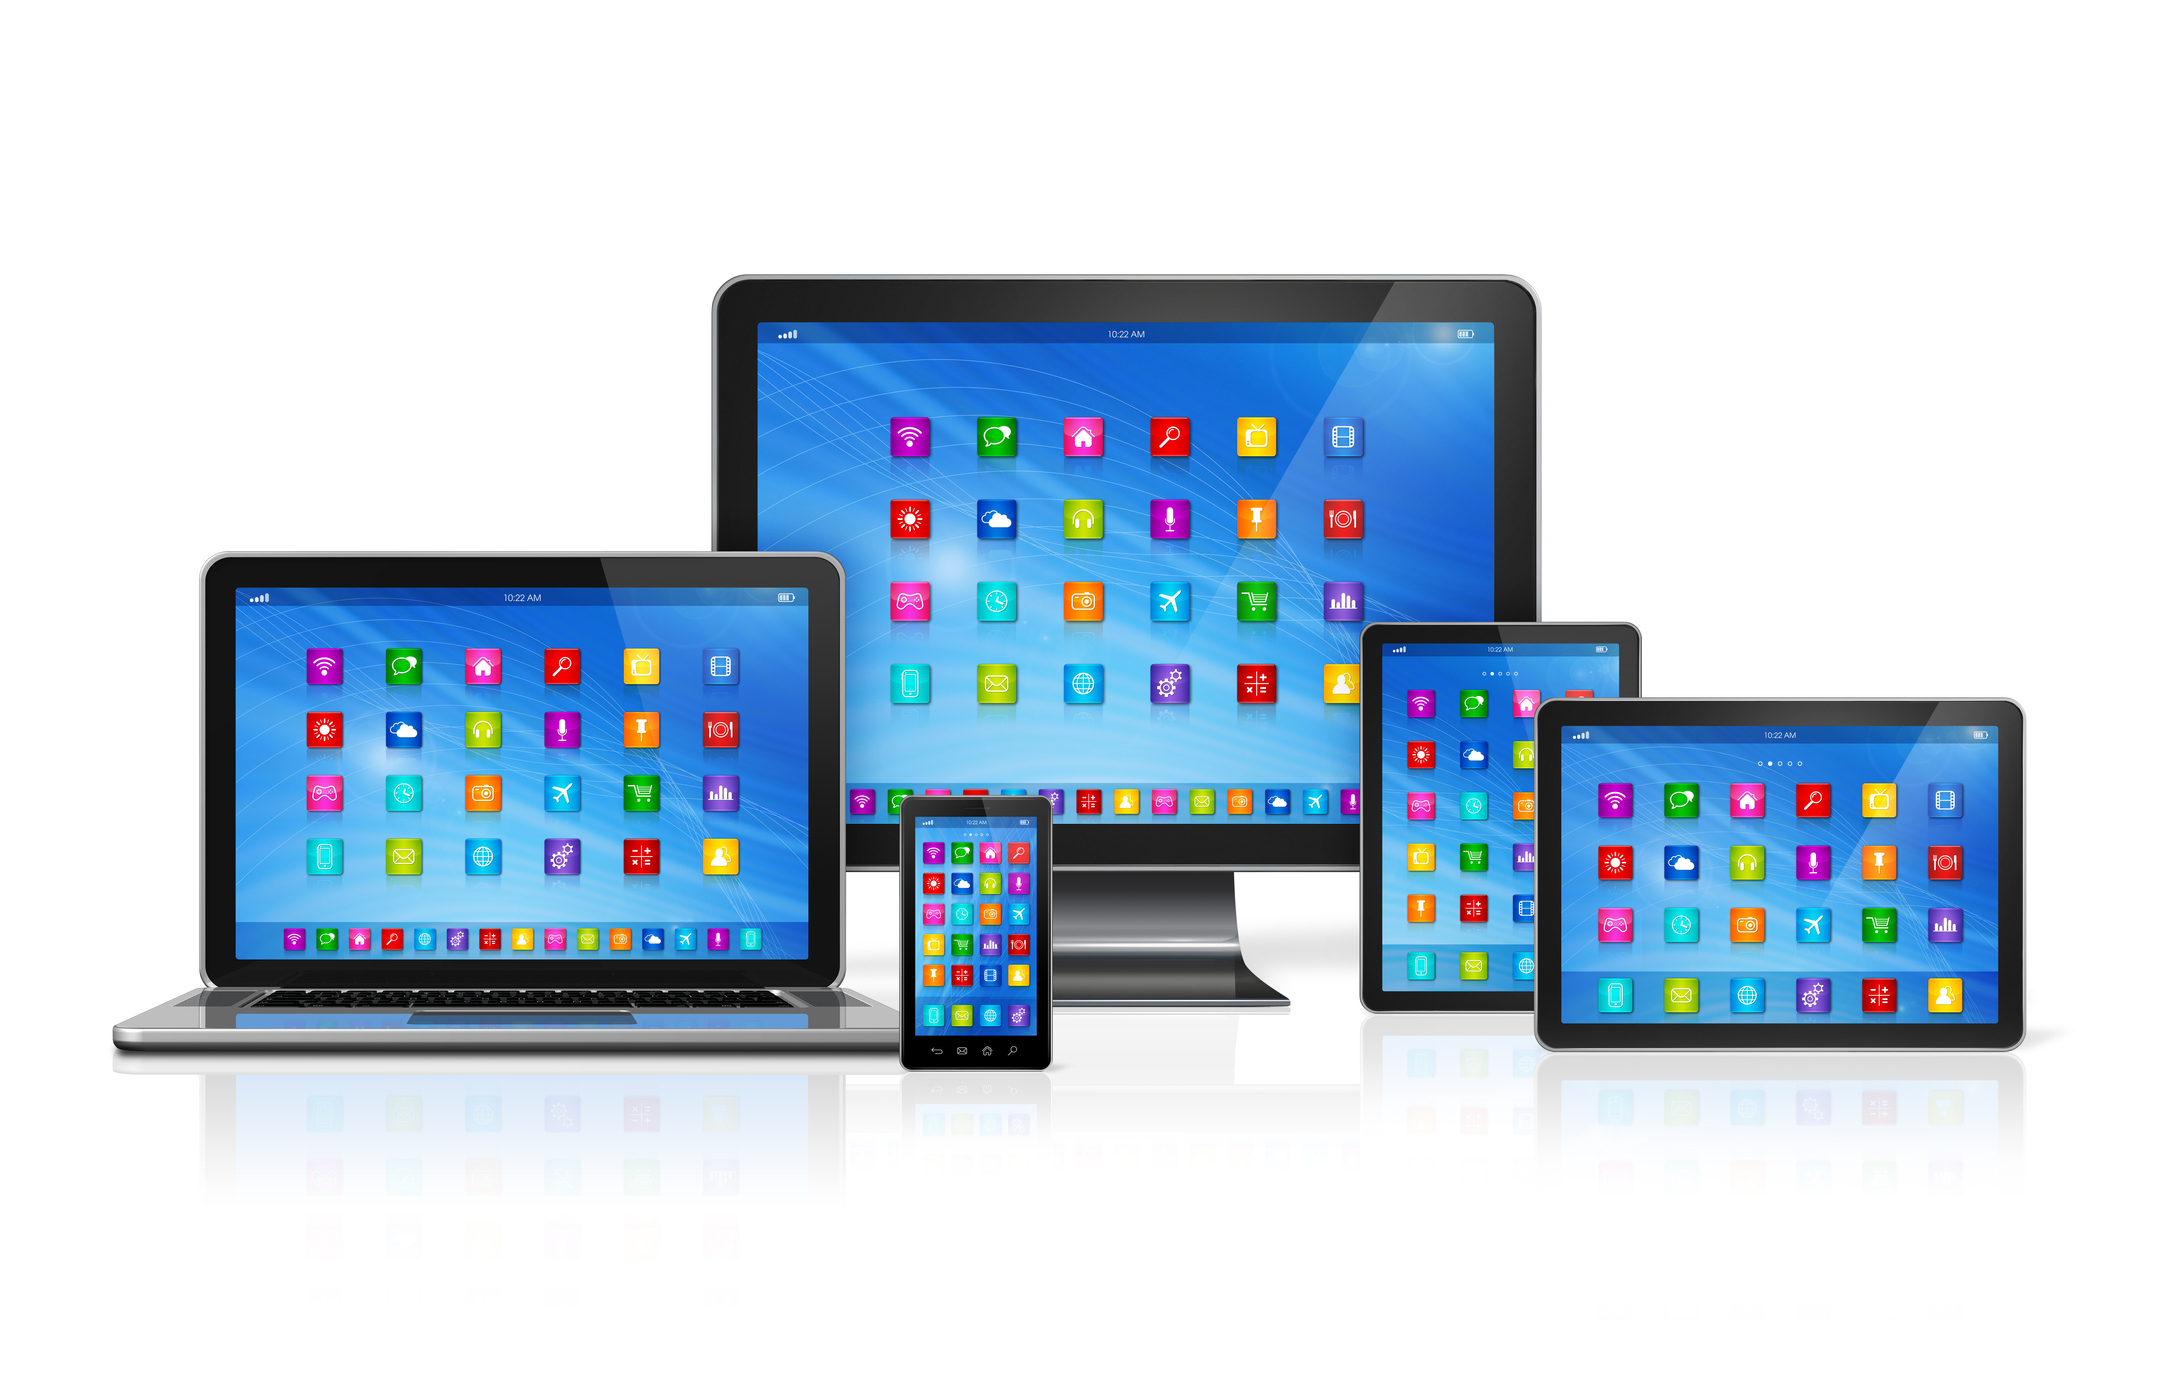 3D Smartphone, Digital Tablet Computer, Laptop and Monitor isolated on white with clipping path